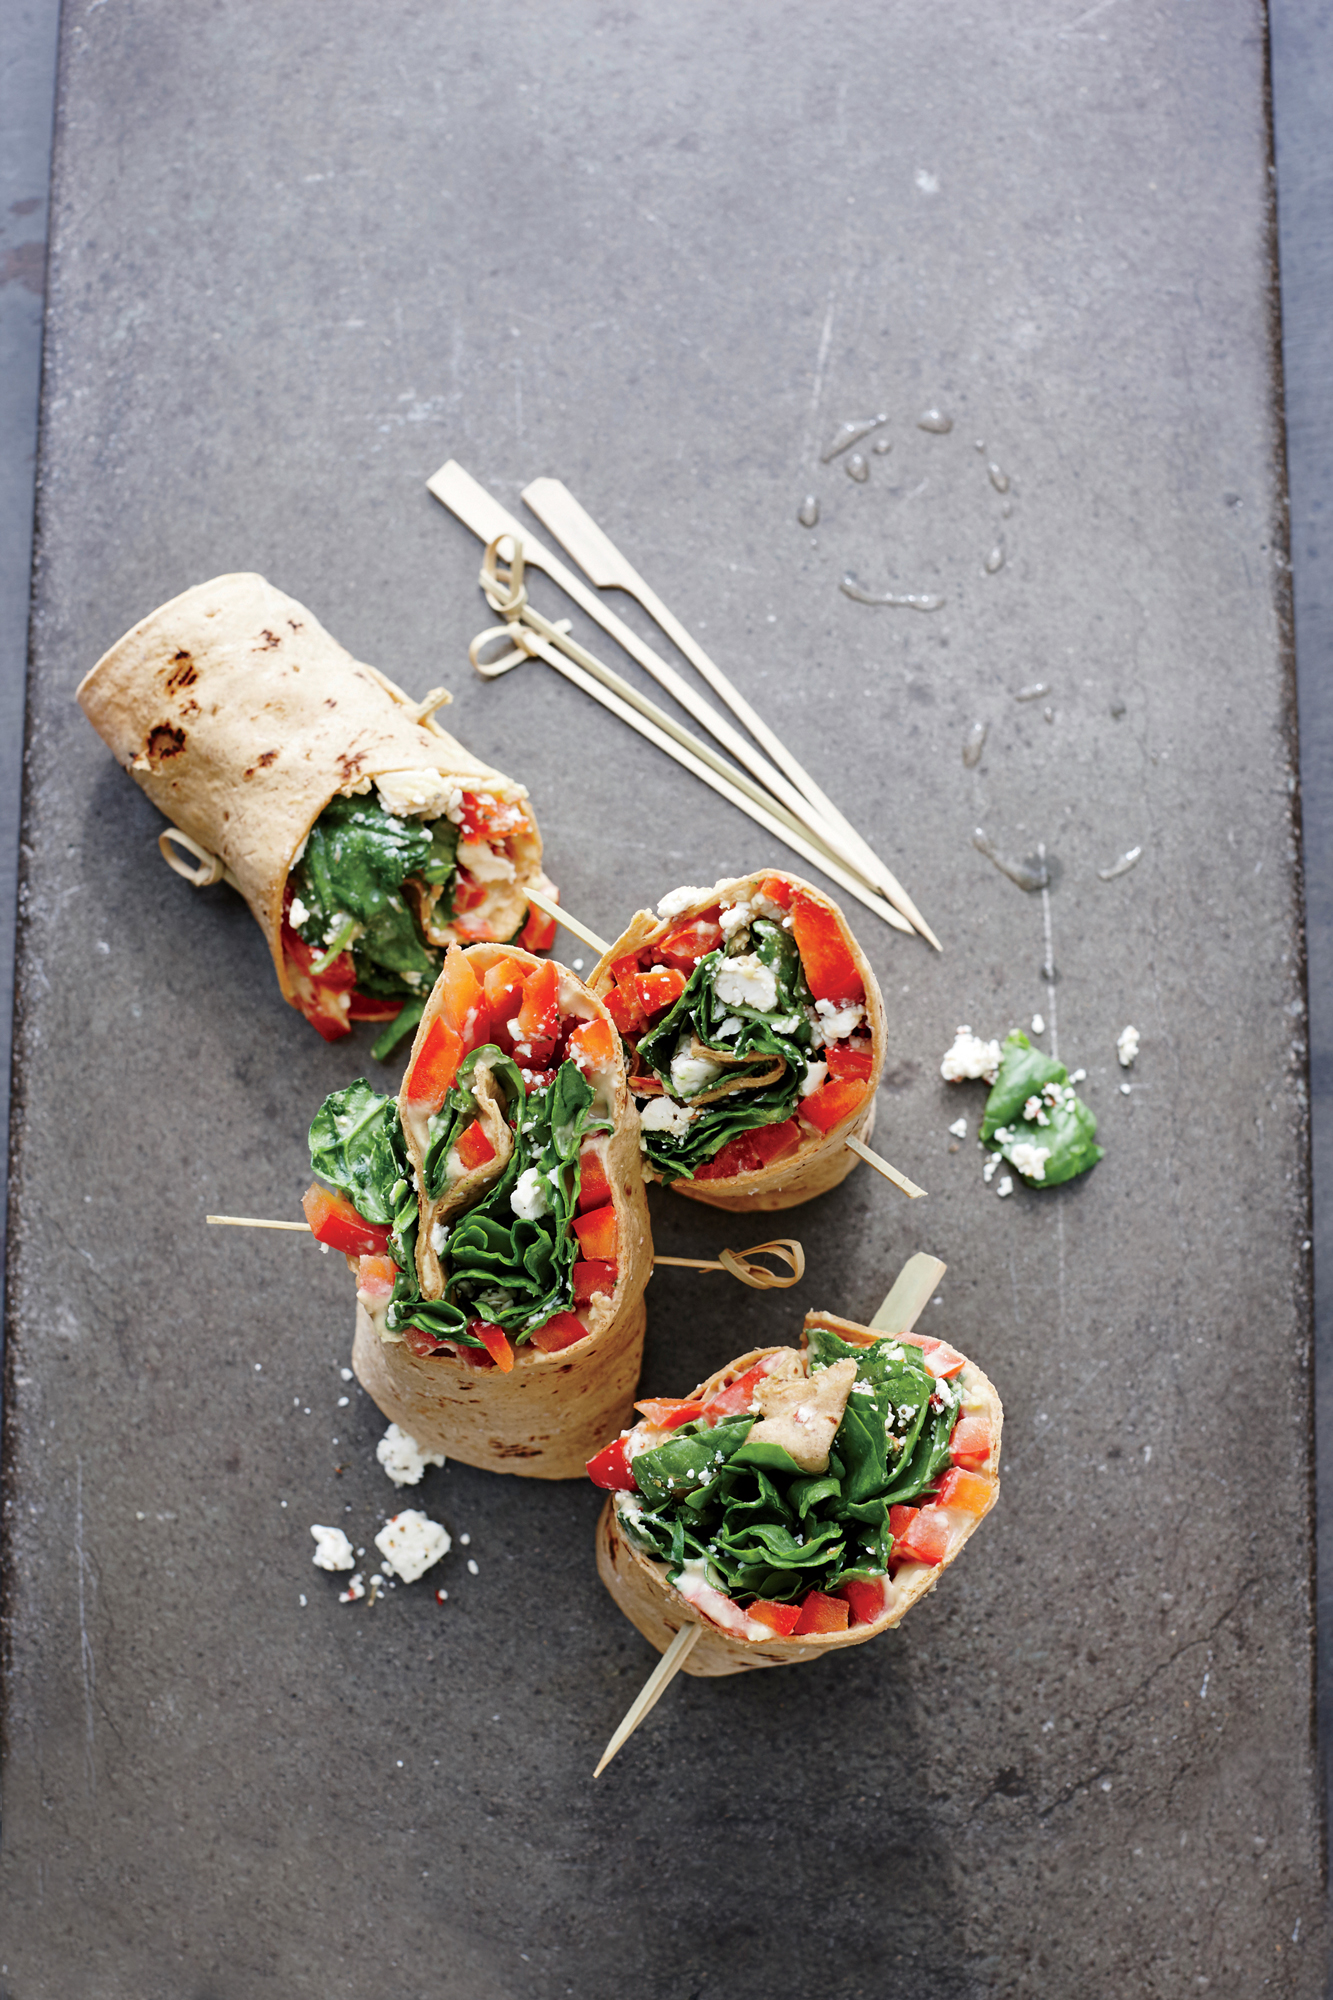 Spinach, Hummus, and Bell Pepper Wraps